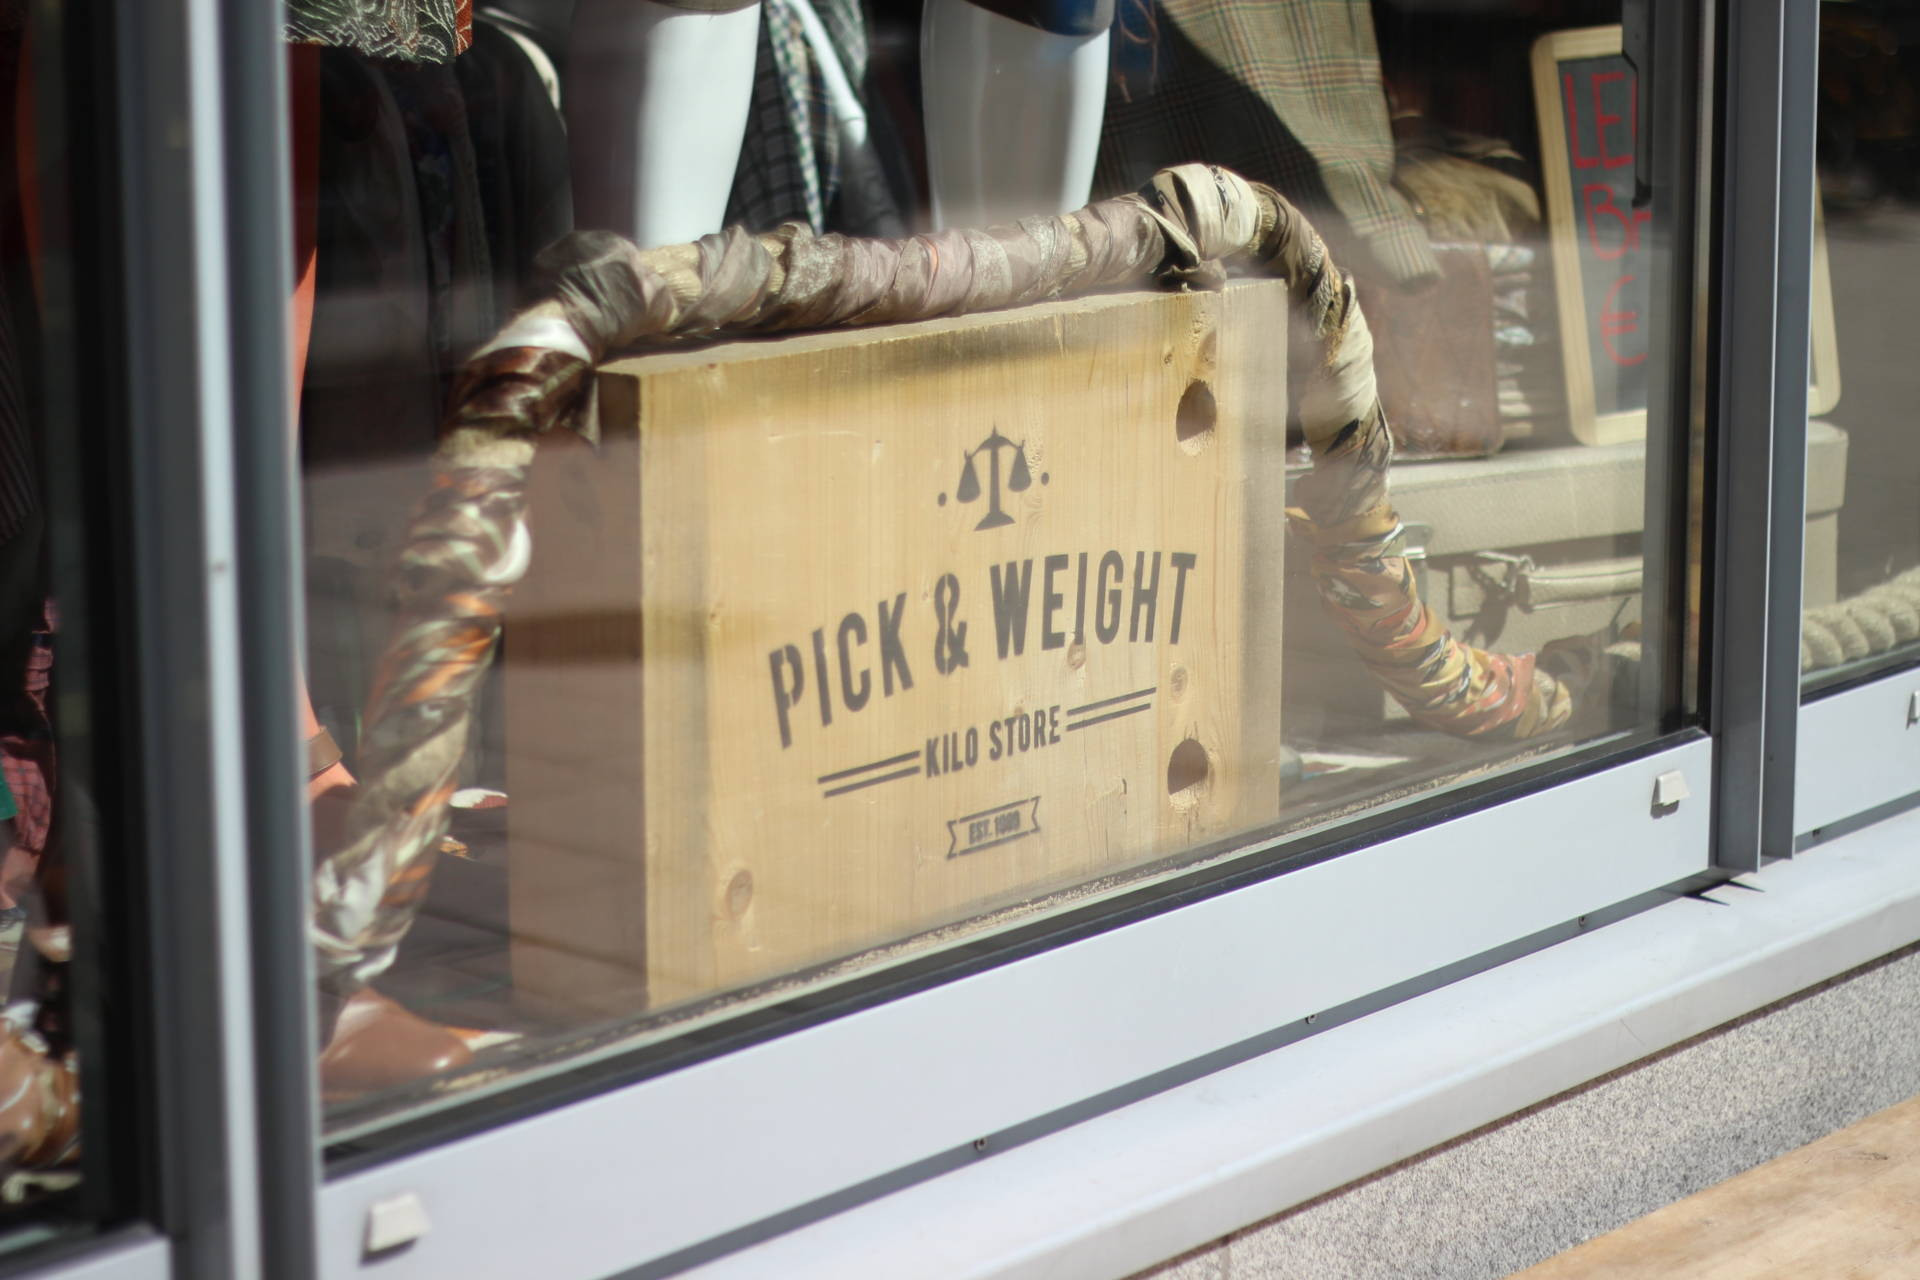 Pick & Weight Munich